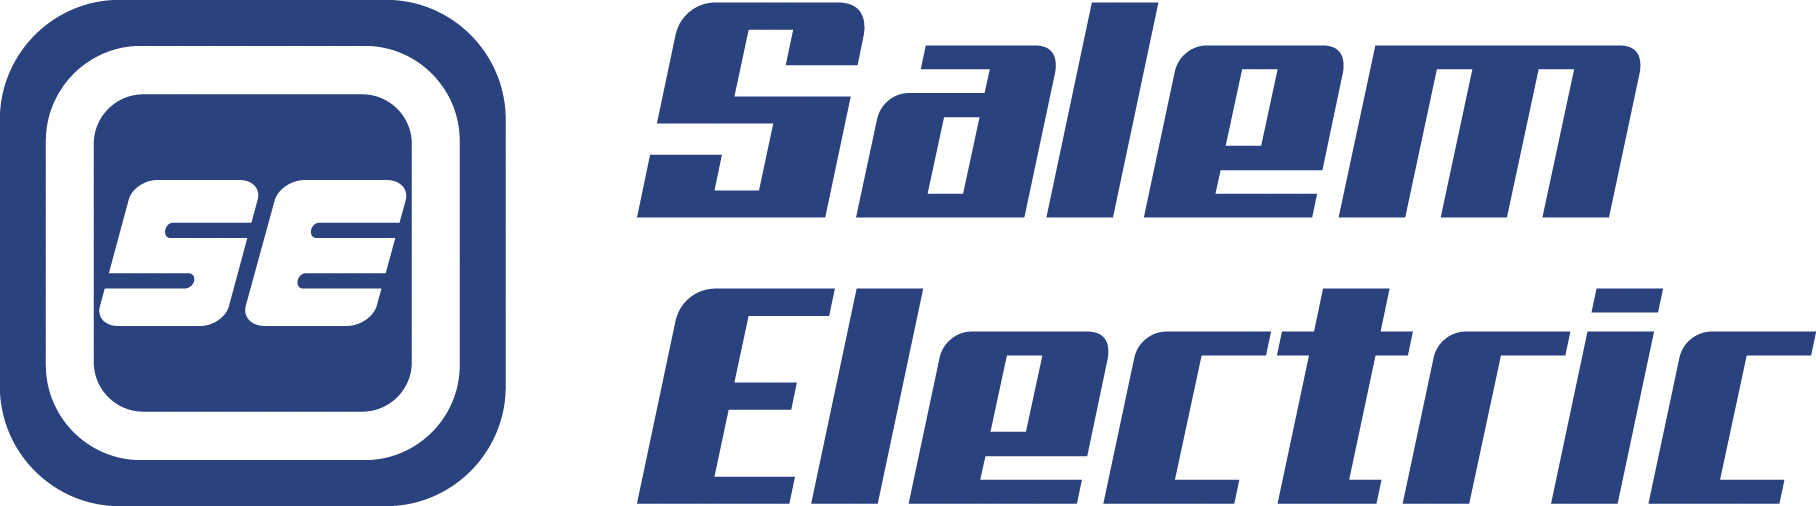 Salem Electric Logo STK RGB